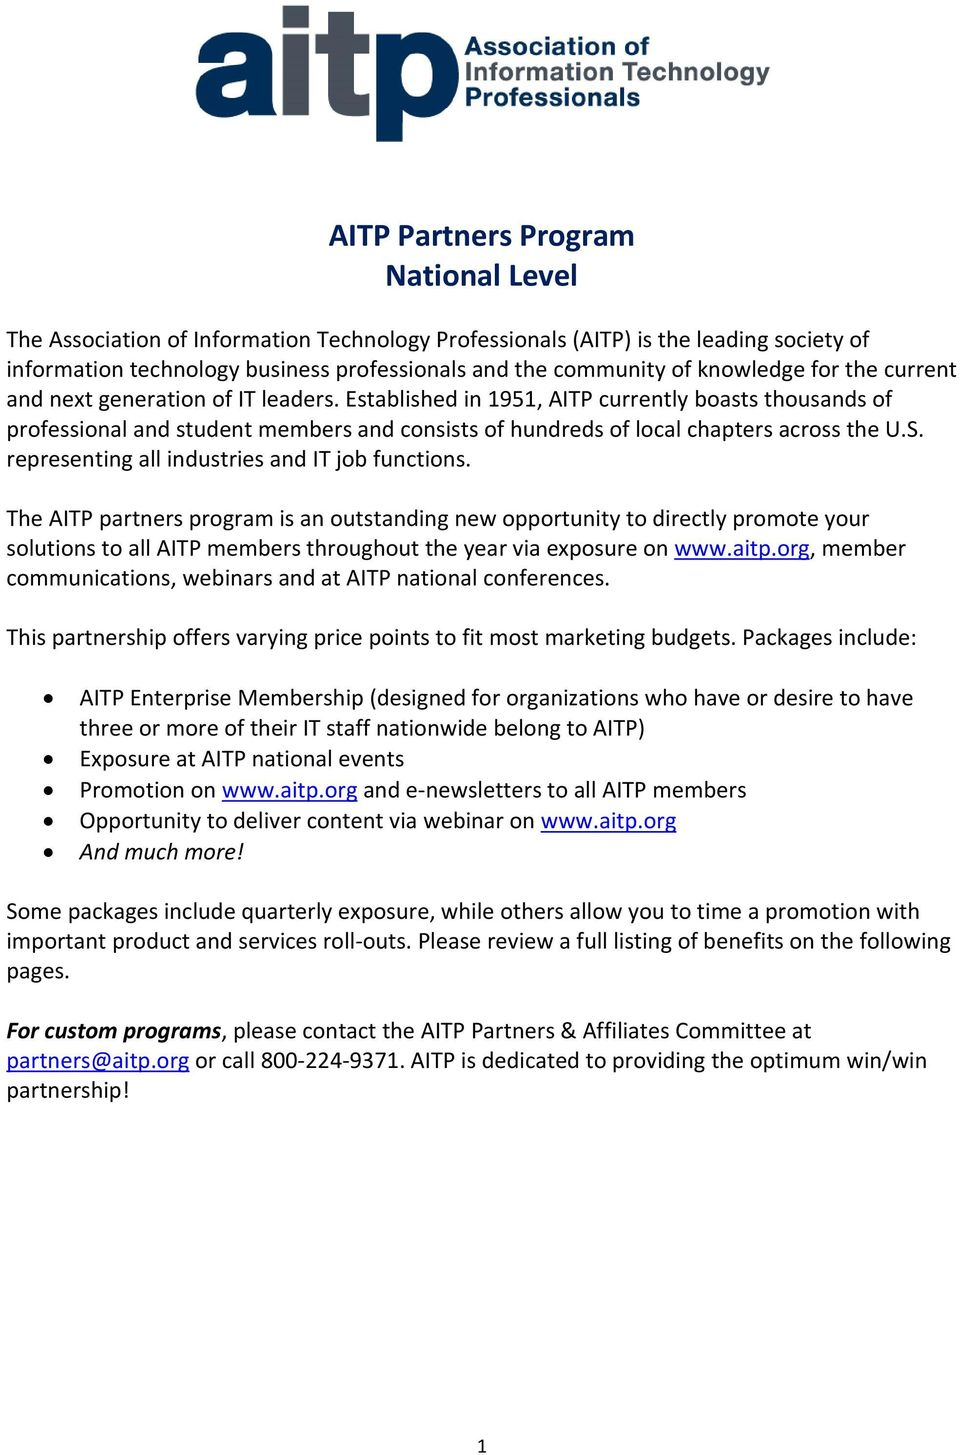 Established in 1951, AITP currently boasts thousands of professional and student members and consists of hundreds of local chapters across the U.S. representing all industries and IT job functions.